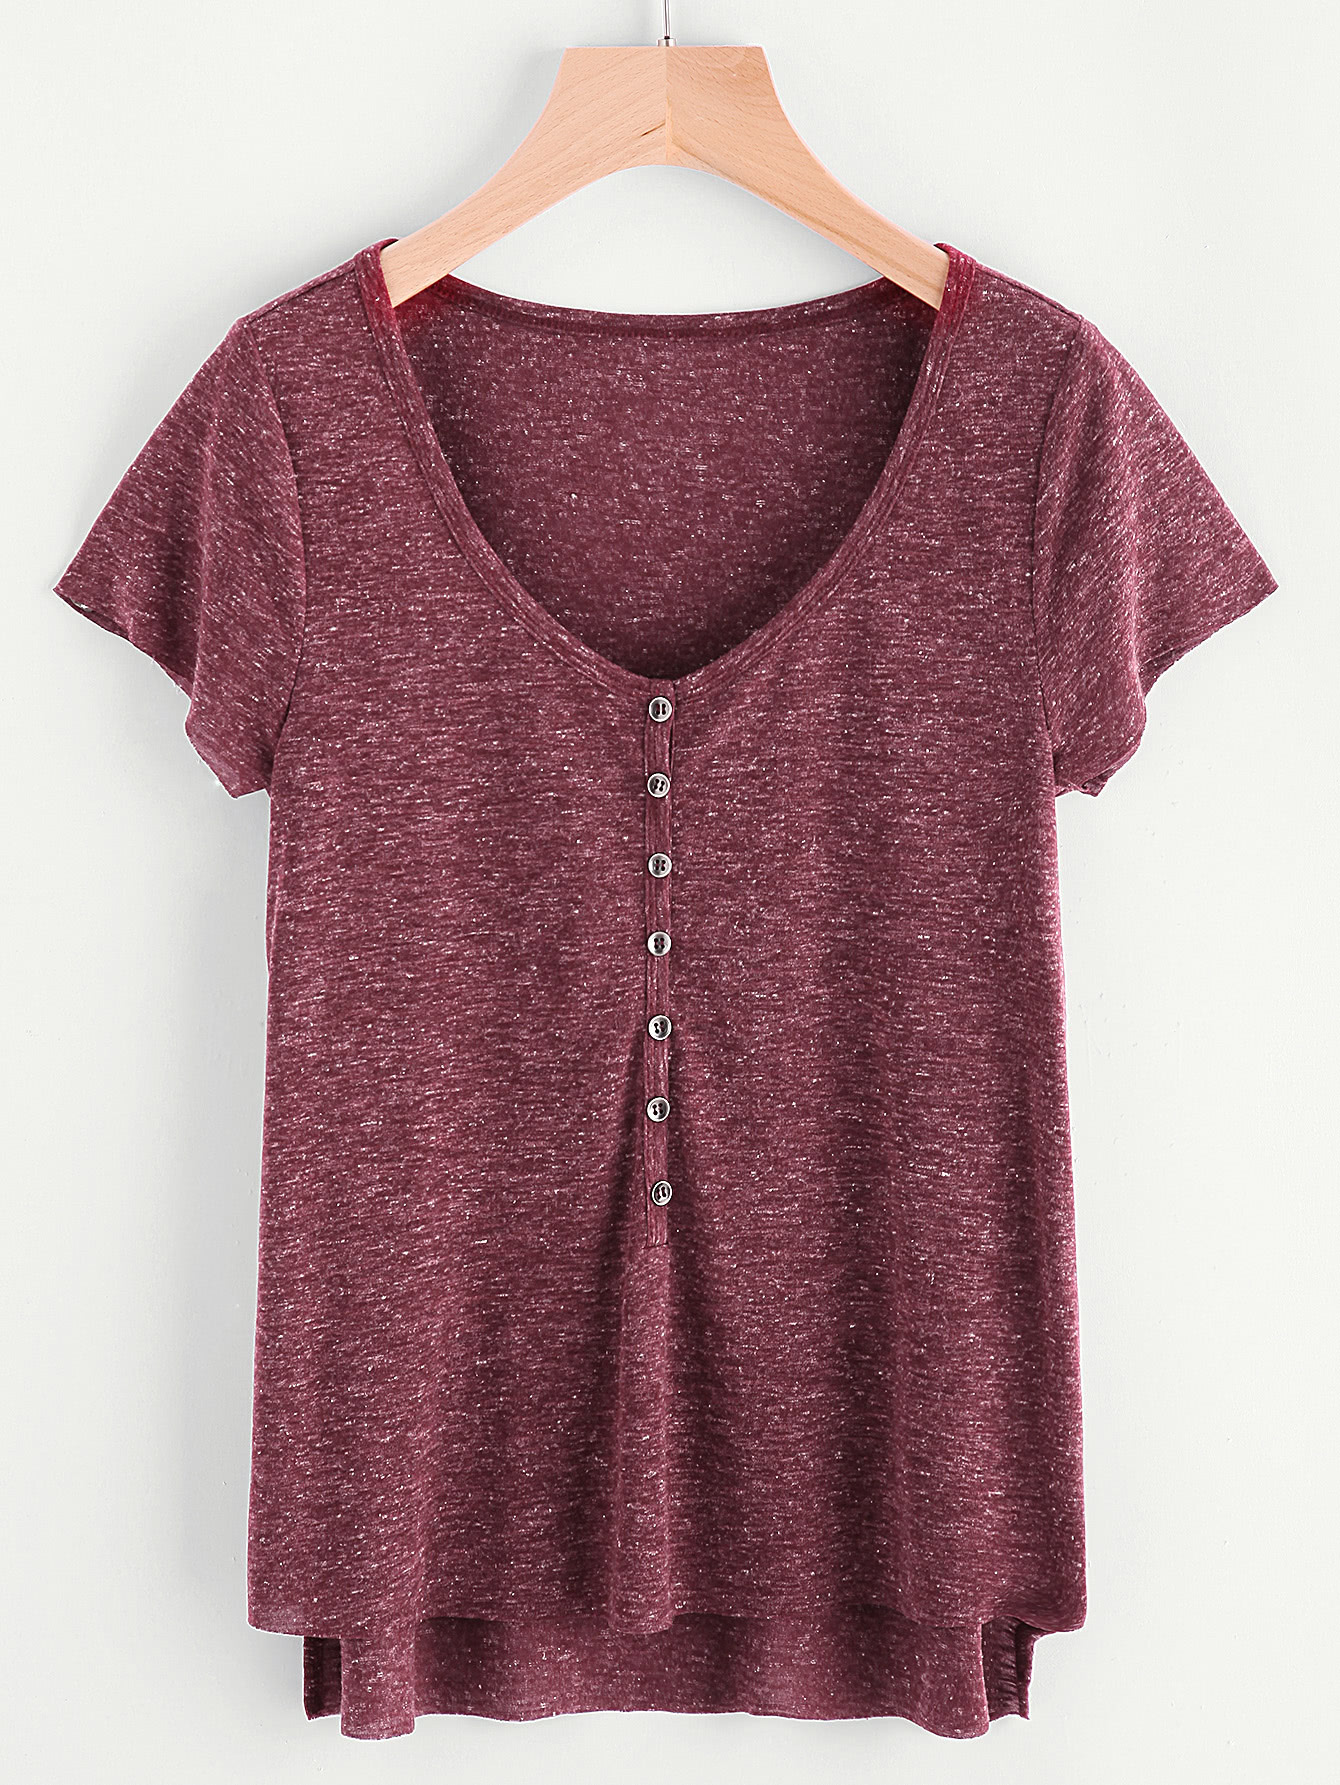 Marled Knit Button Front Staggered Hem T-shirt marled knit button front staggered hem t shirt